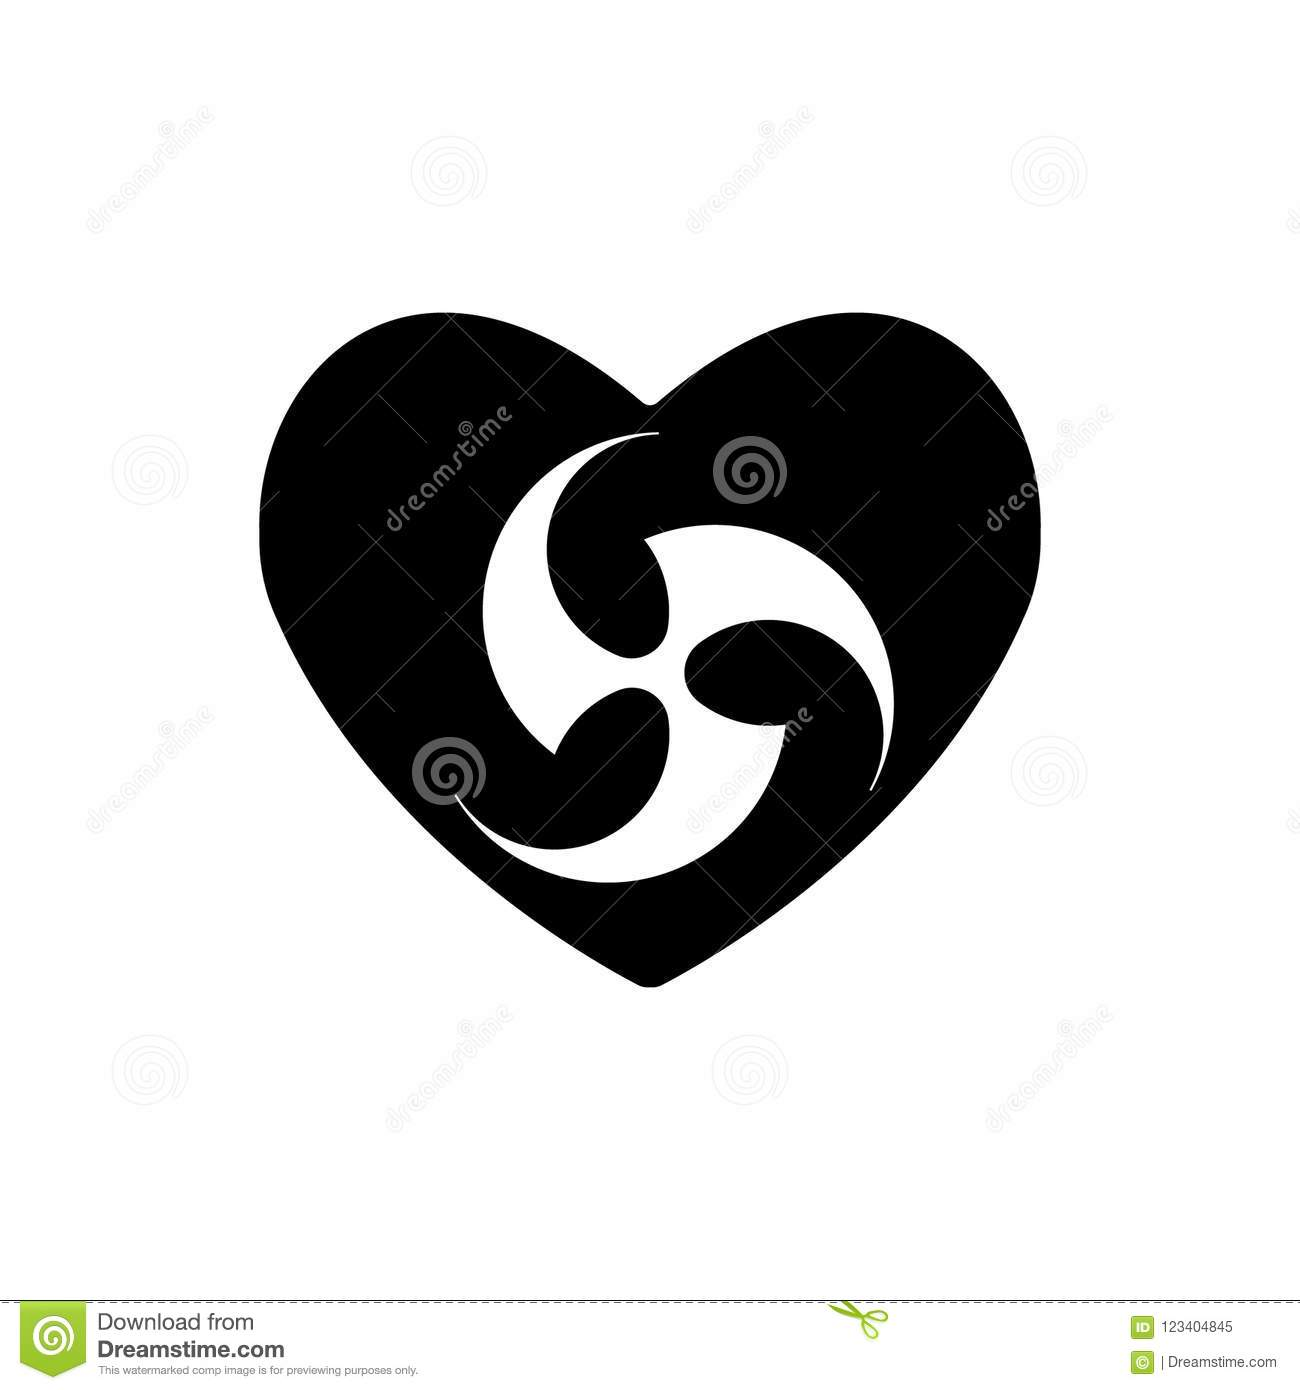 Religious Tomoe Sign In Heart Heart Black Icon Love Symbol